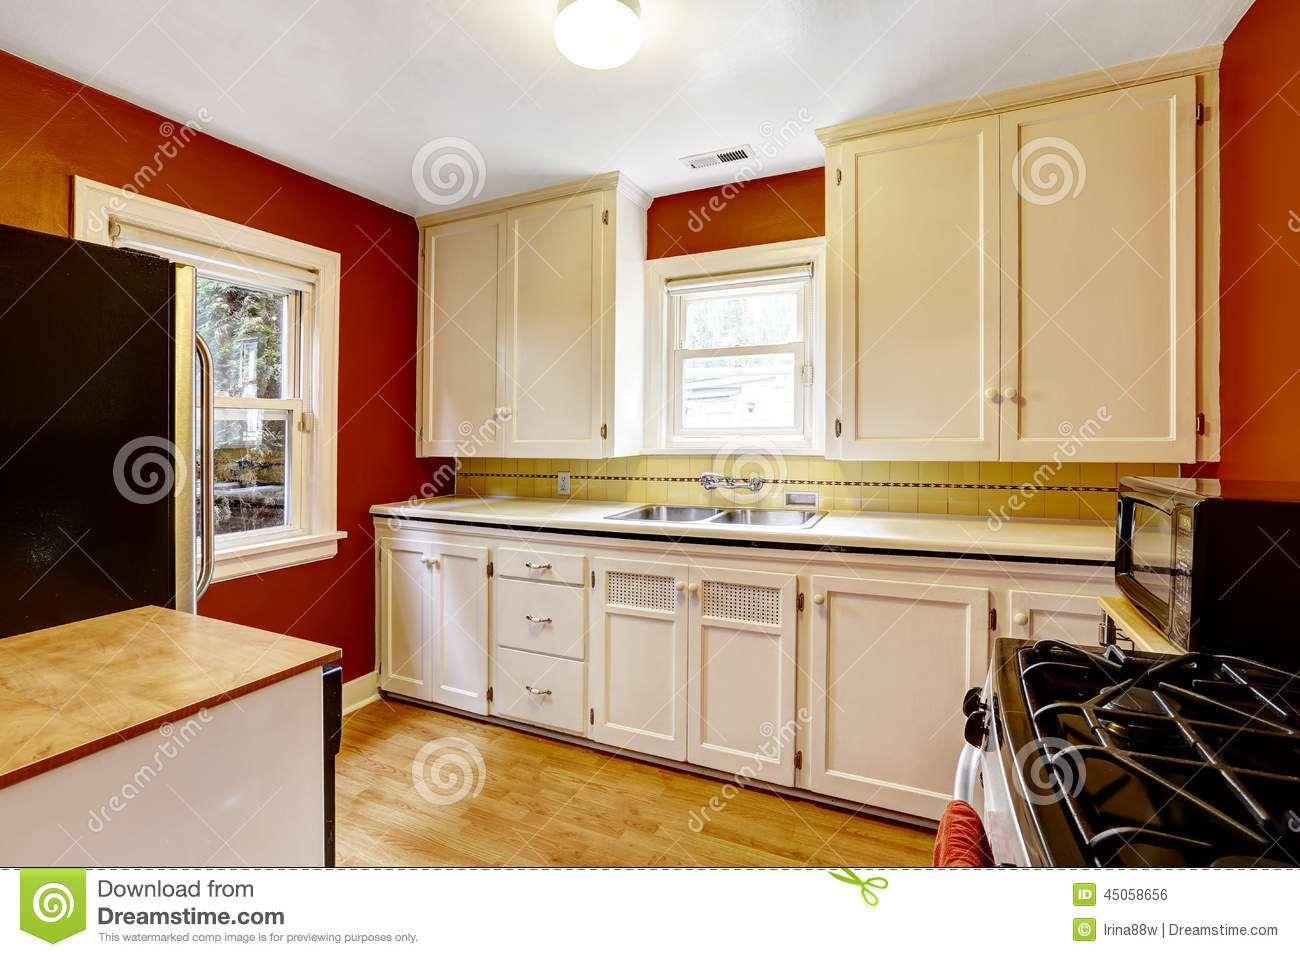 White kitchen cabinets with bright red wall stock photo for White cabinets red walls kitchen